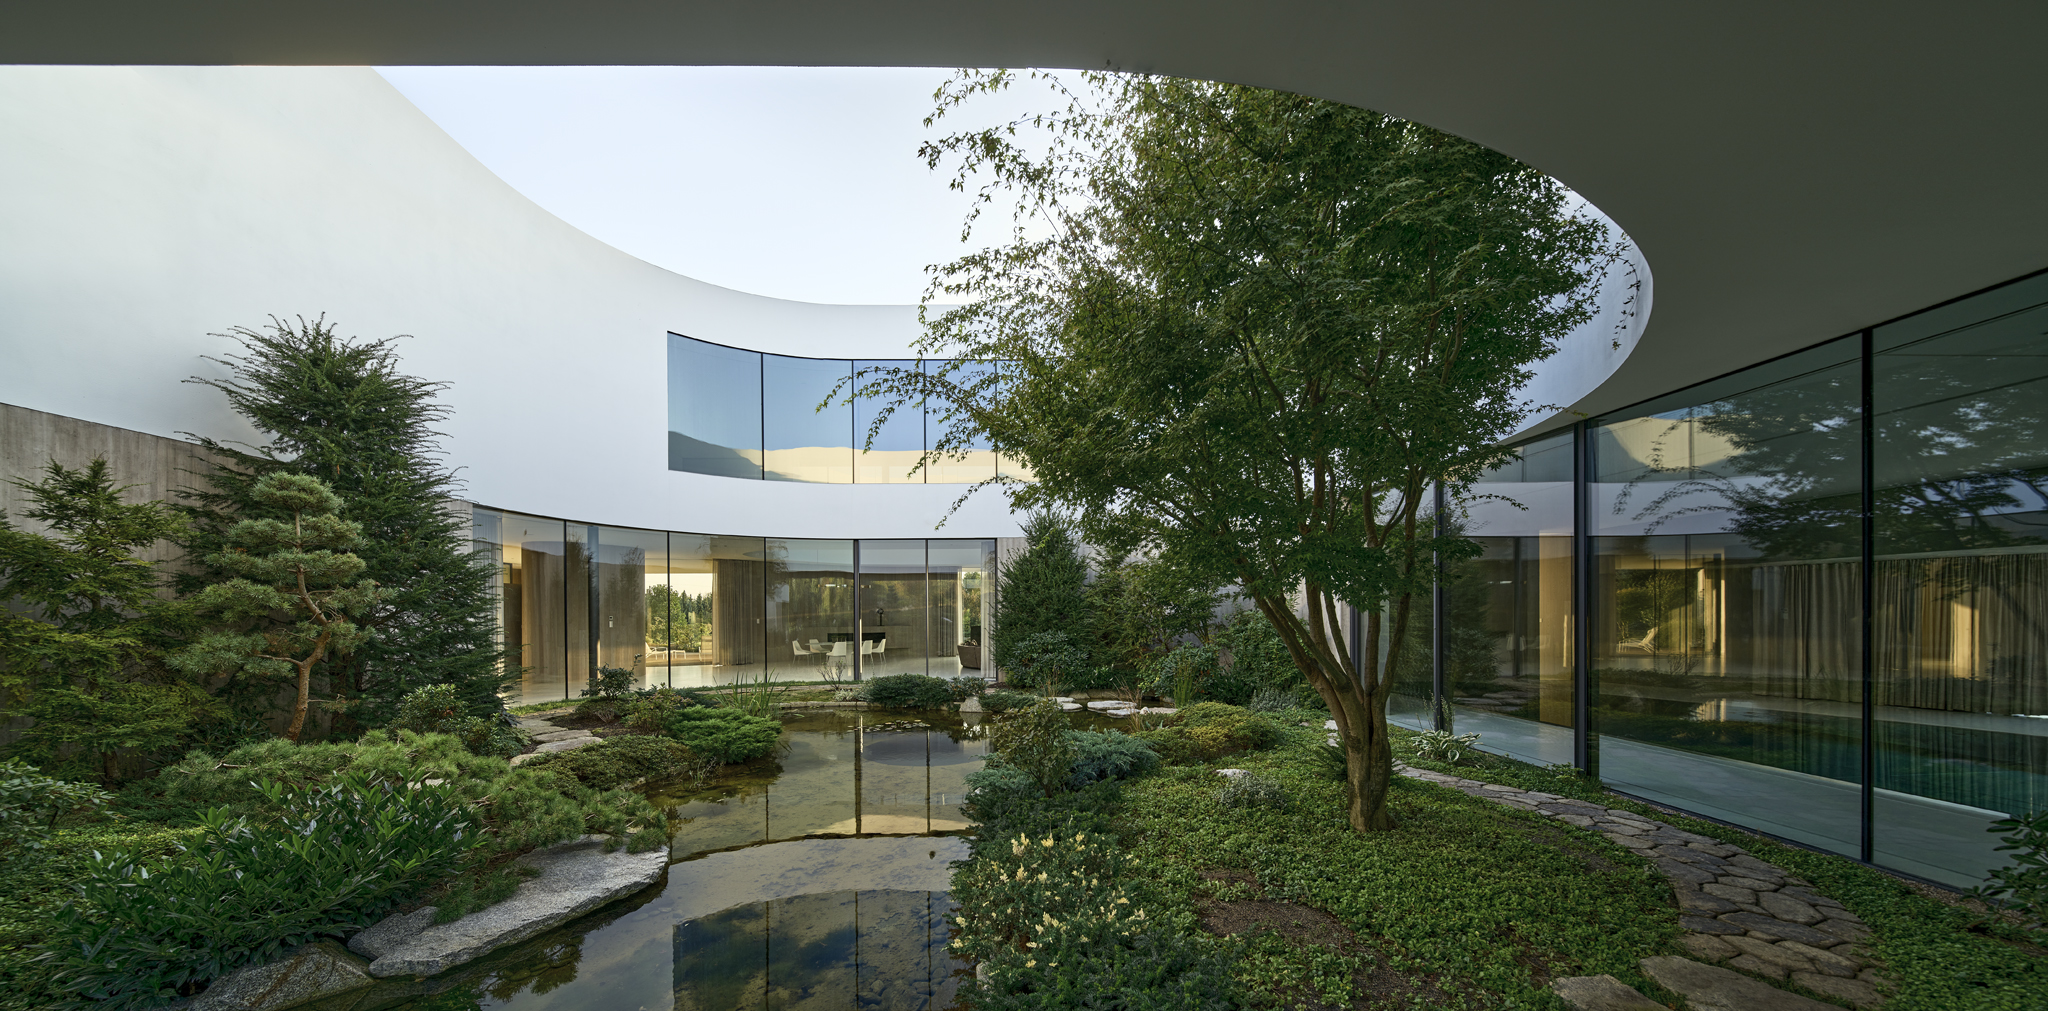 From The Garden House's extensive grounds include multiple ponds, pathways, and private areas